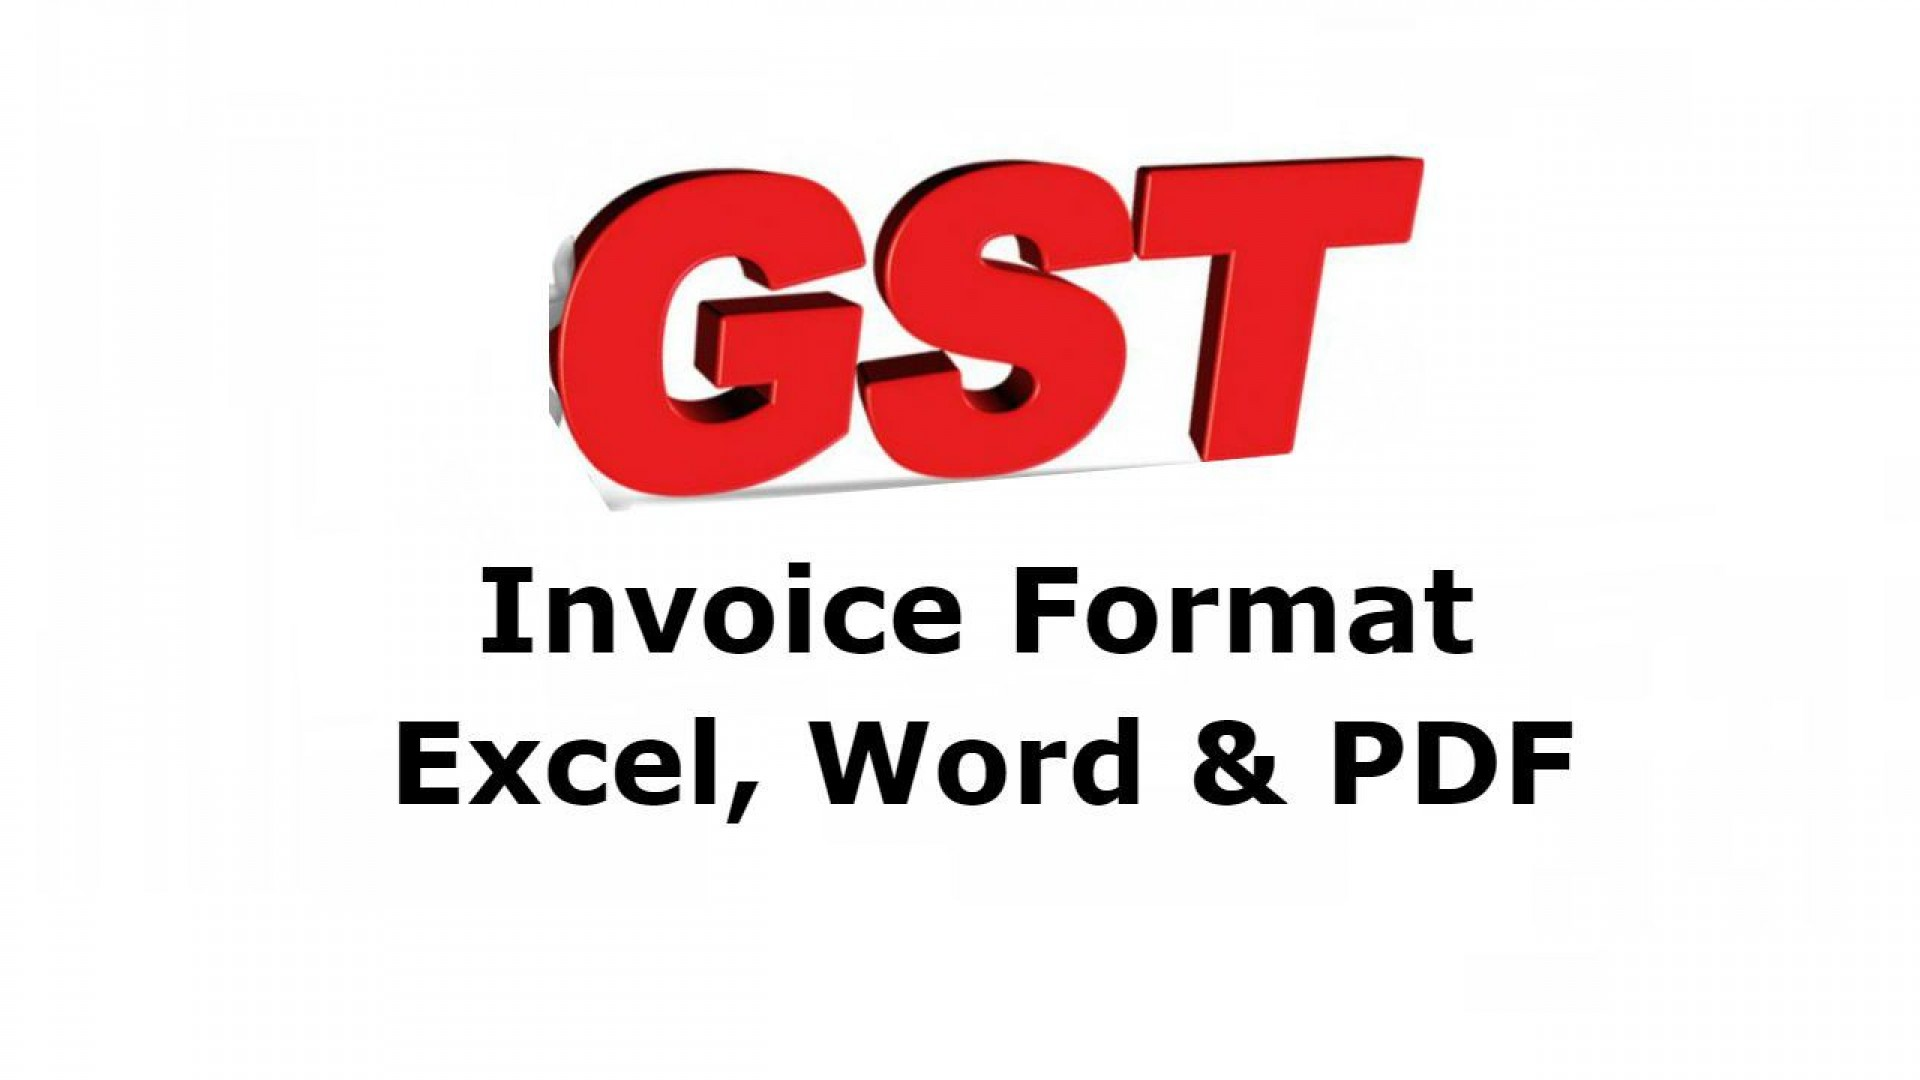 007 Staggering Free Excel Invoice Template Gst India High Resolution 1920